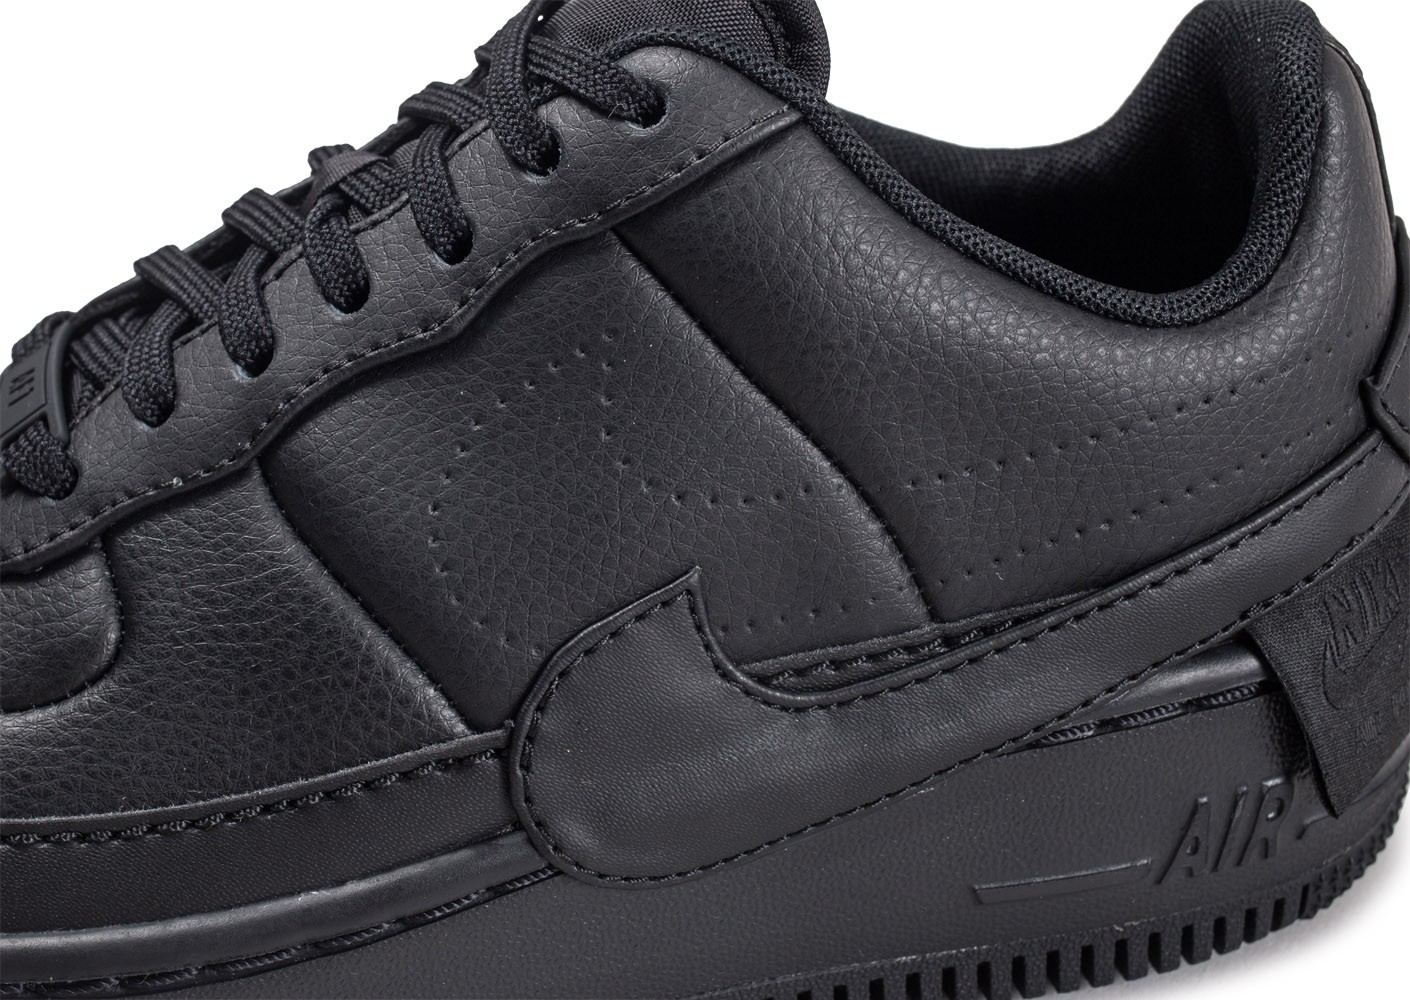 ... Chaussures Nike Air Force 1 Jester XX noire femme vue dessus